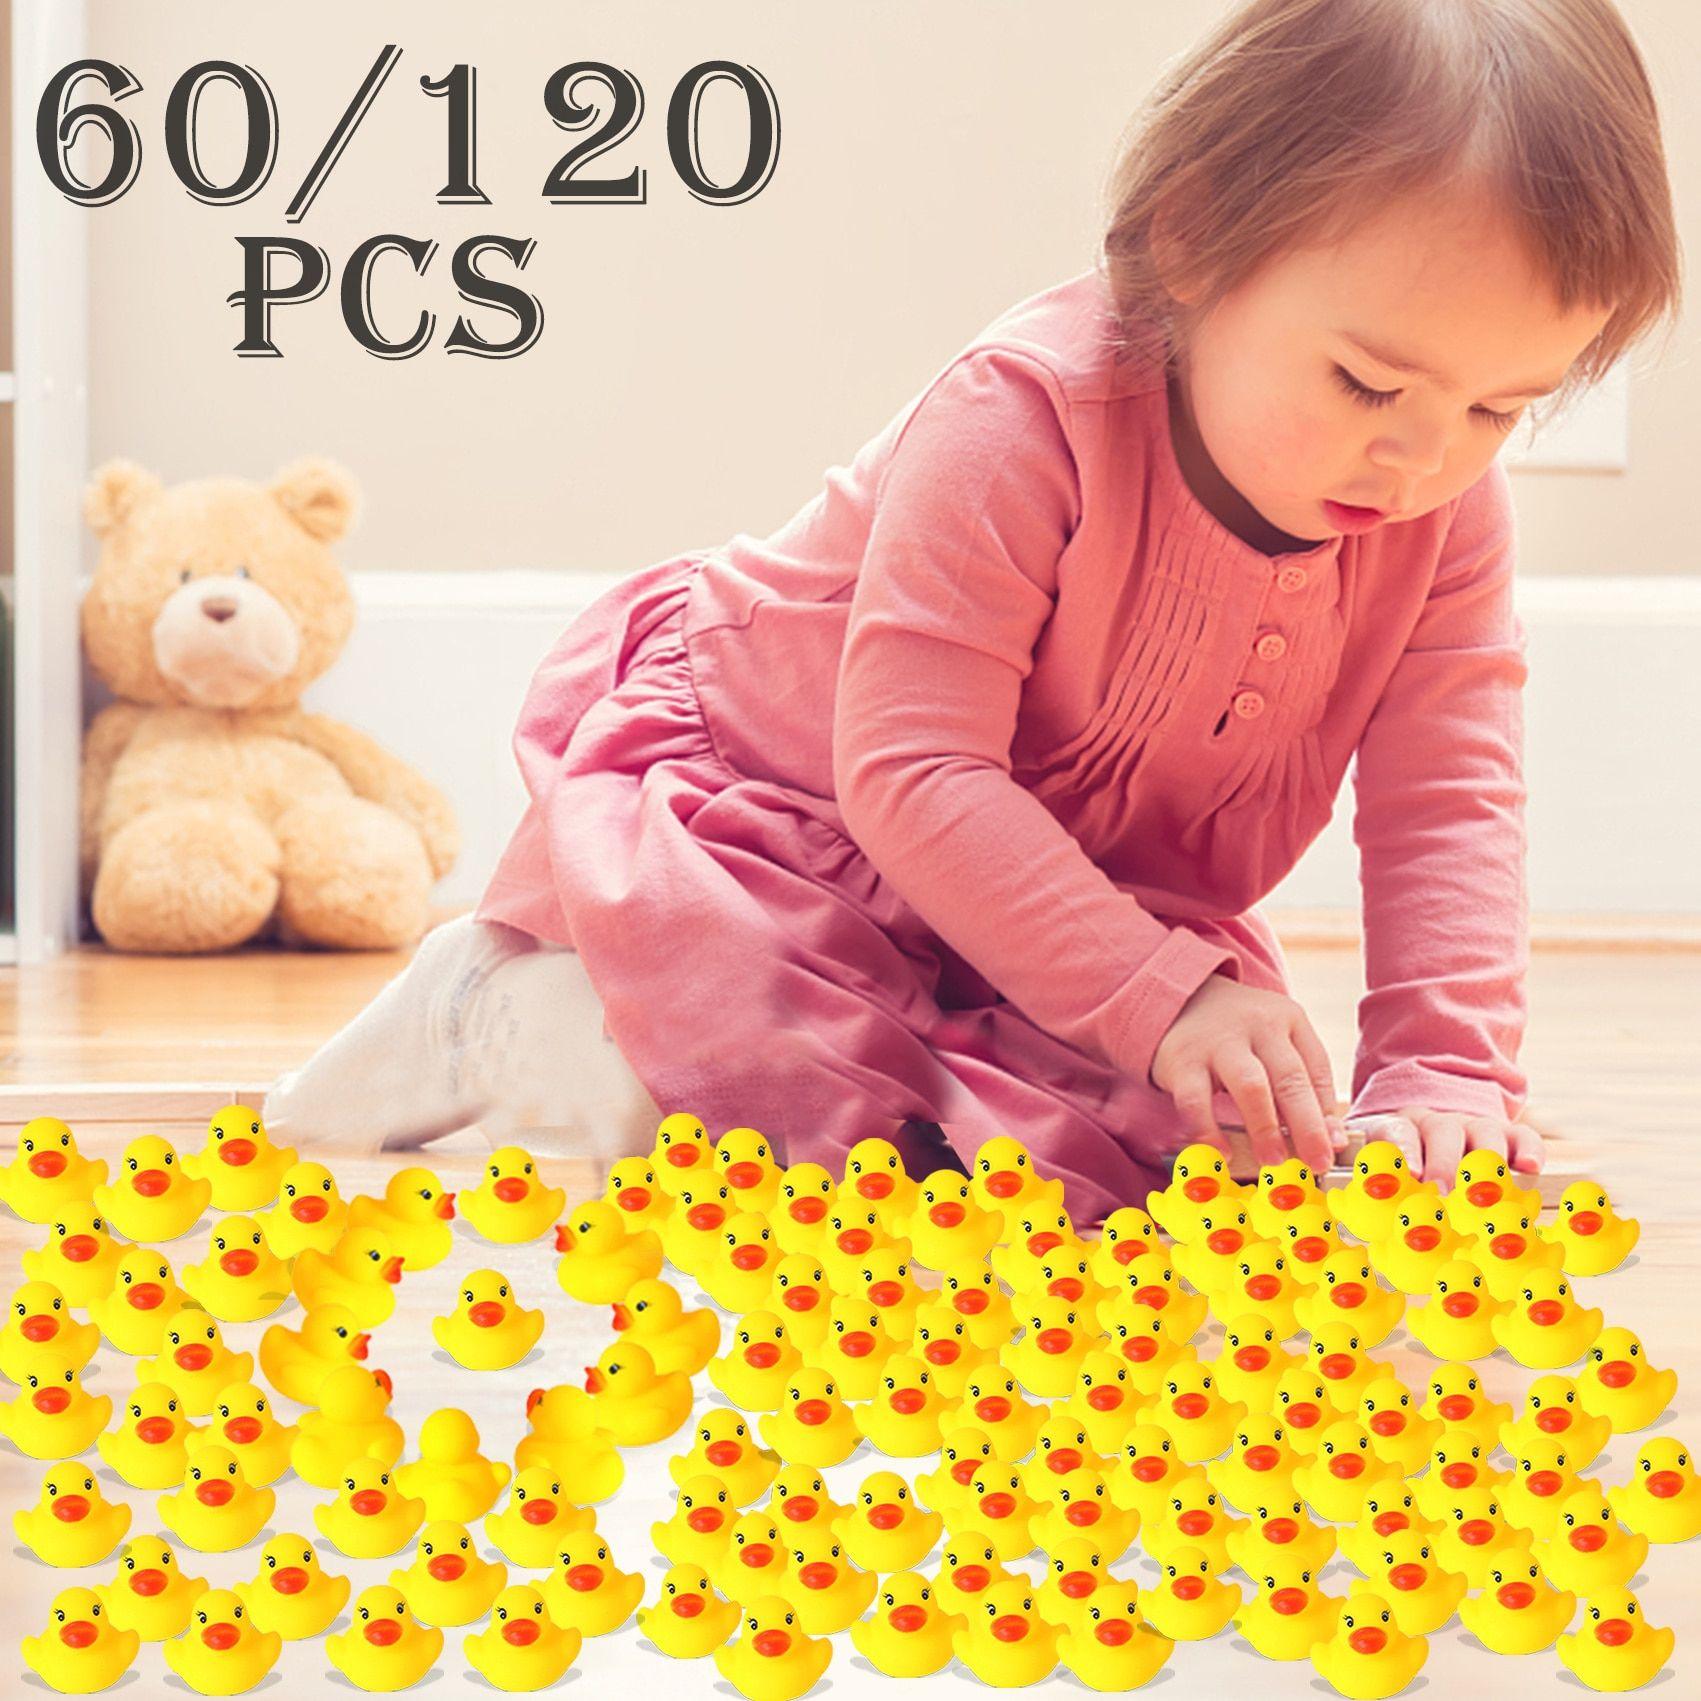 60pcs/120pcs  Mini Yellow Rubber Ducks Bath Toy  Baby Shower Water toys Pure Natural Cute Rubber Ducky for Baby Kinder Toys